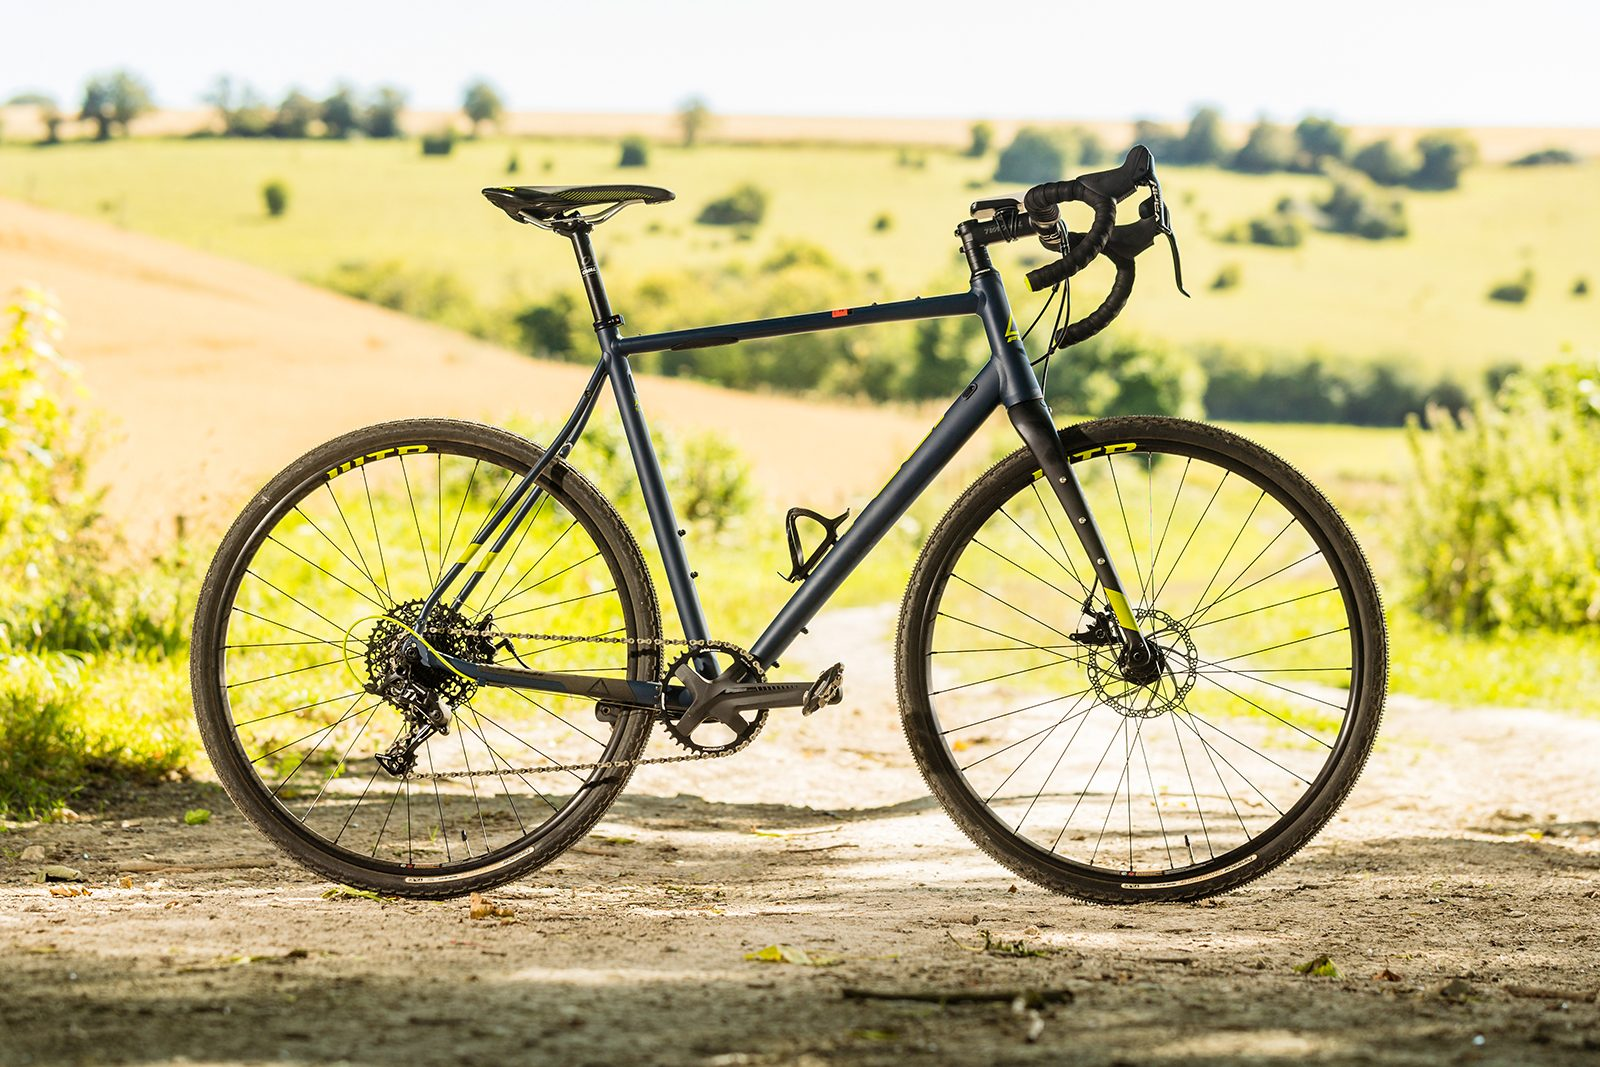 Cheap gravel bikes: affordable adventure bikes for dirt, gravel and commuting